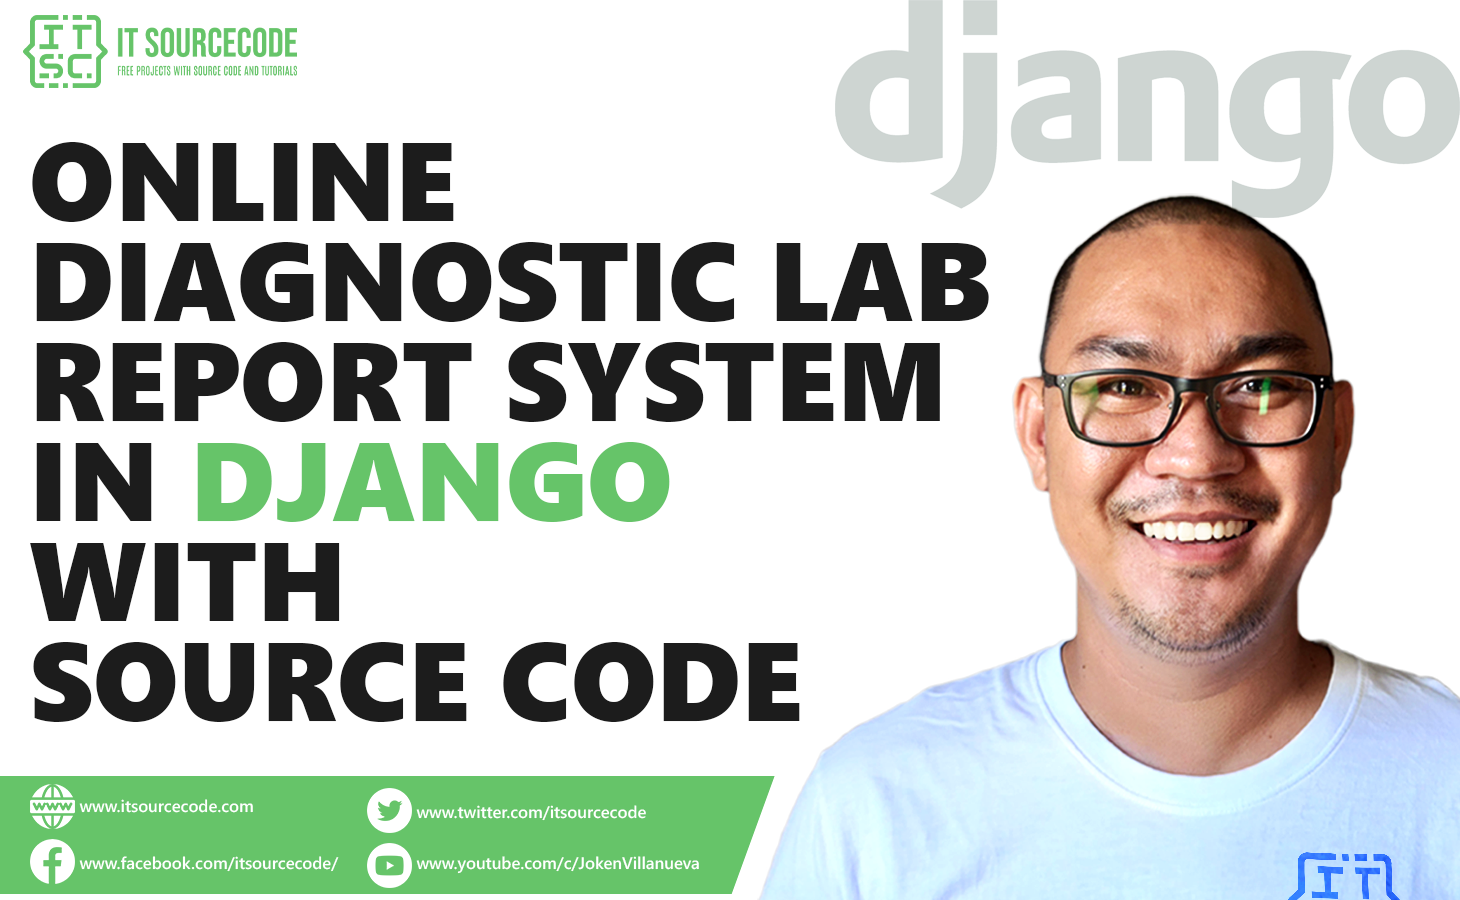 Online Diagnostic Lab Reporting System in Django with SOurce Code